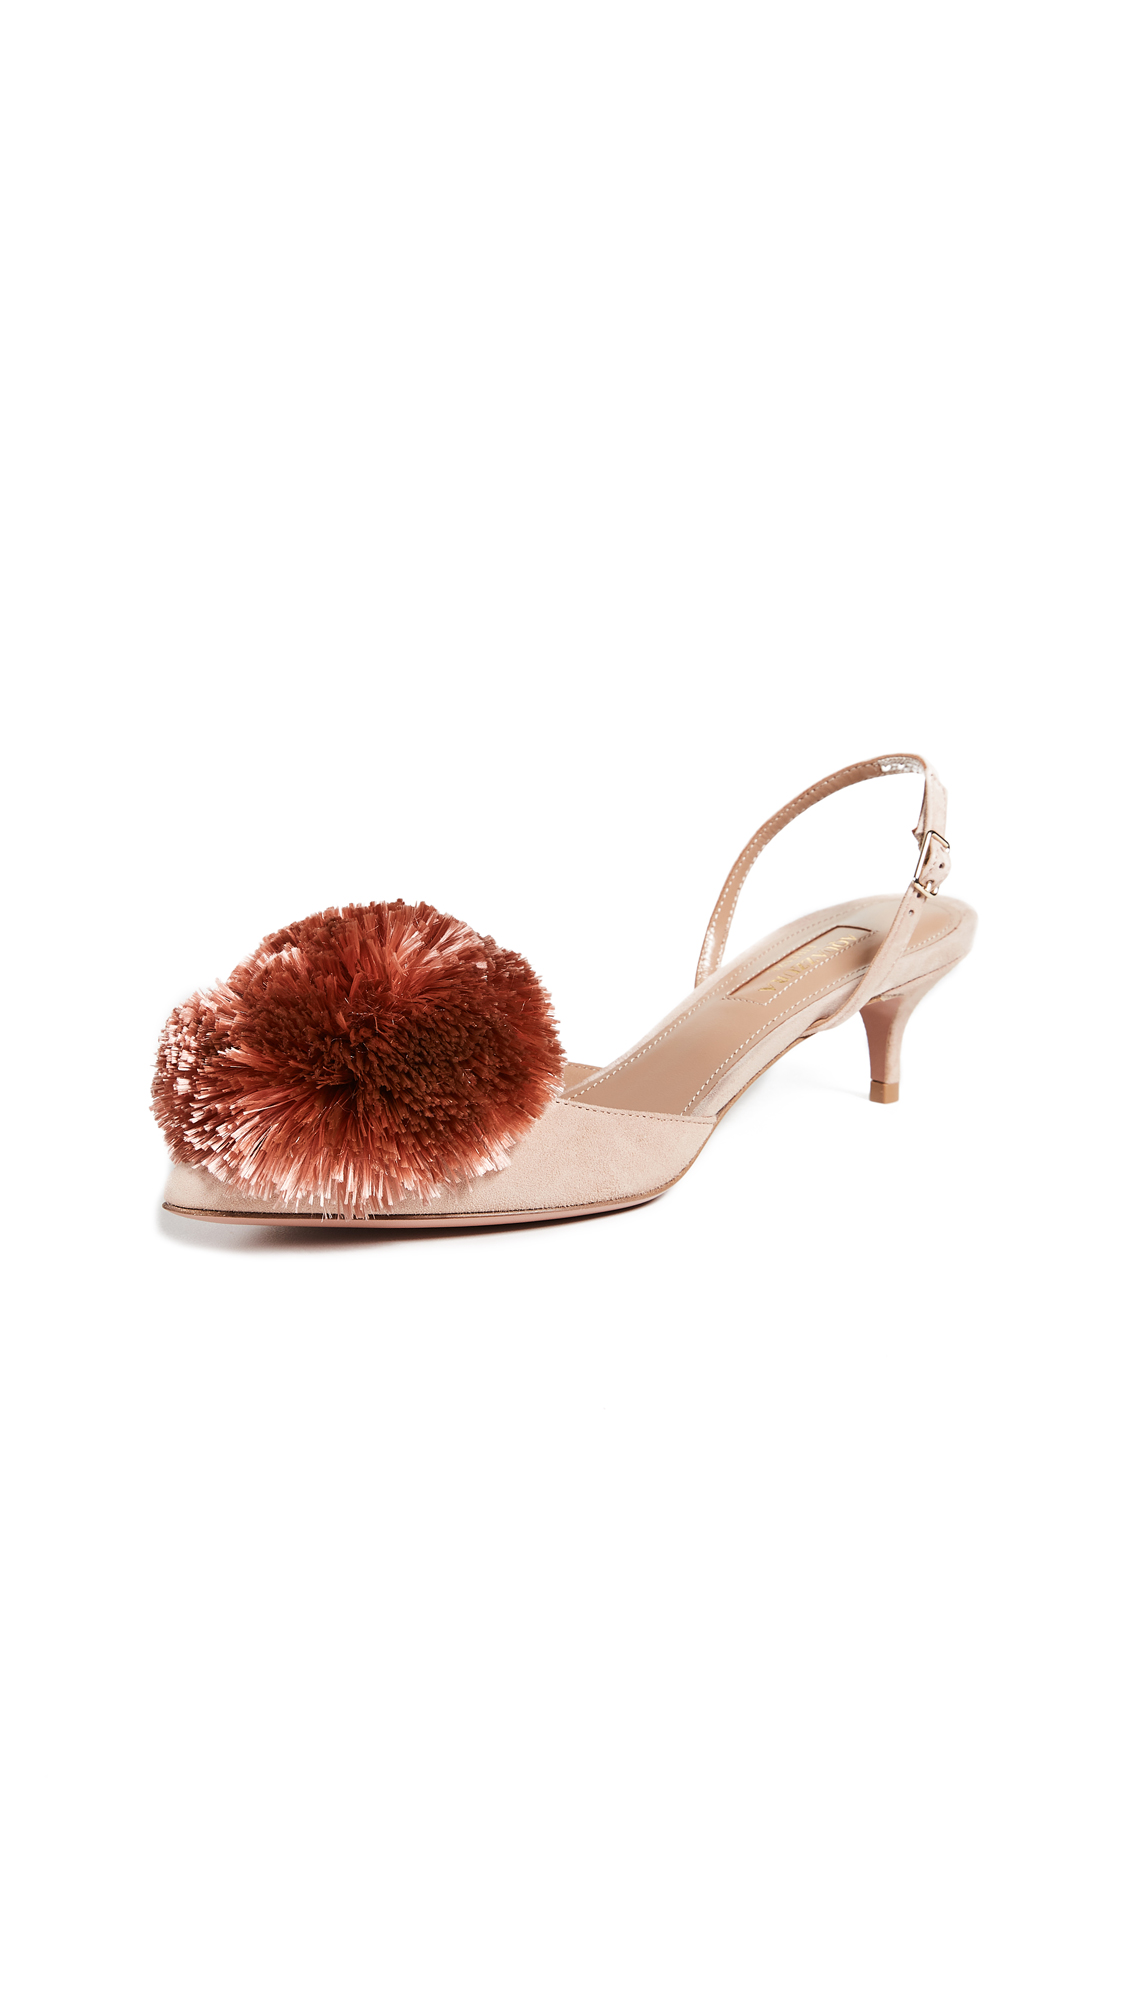 Aquazzura Powder Puff 45 Sling Pumps - Powder Pink